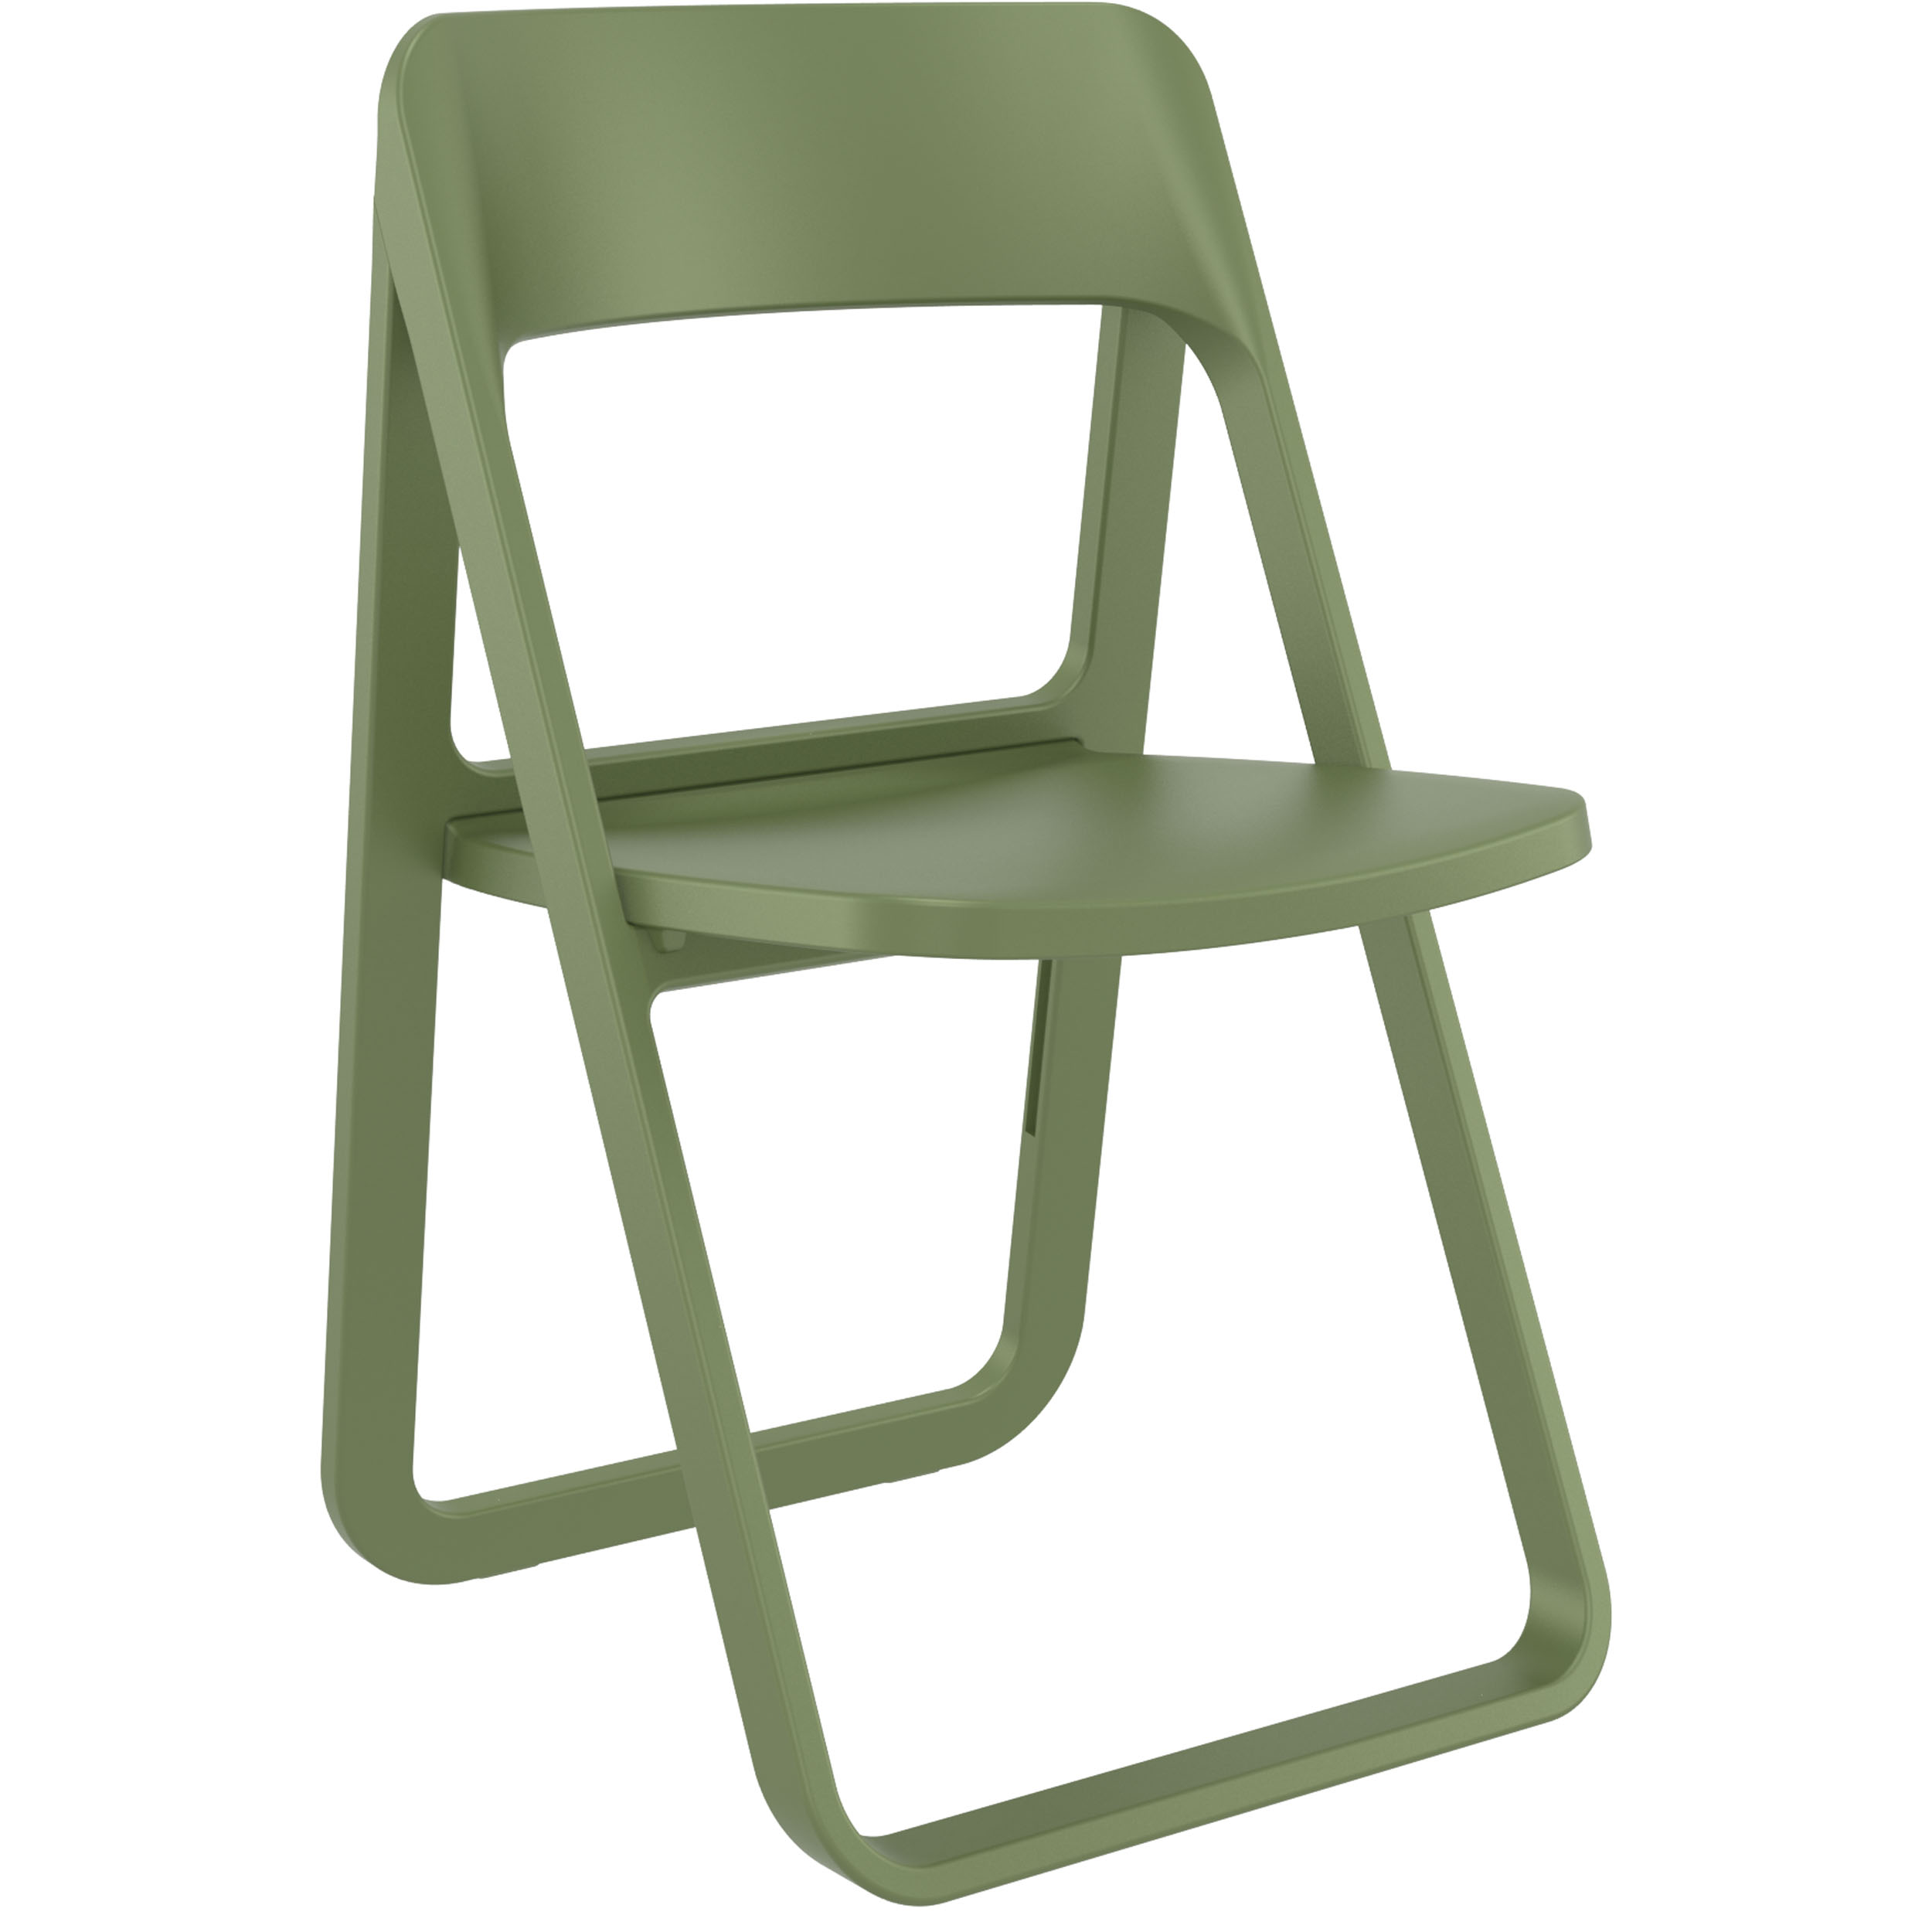 Dream Chair - Olive Green